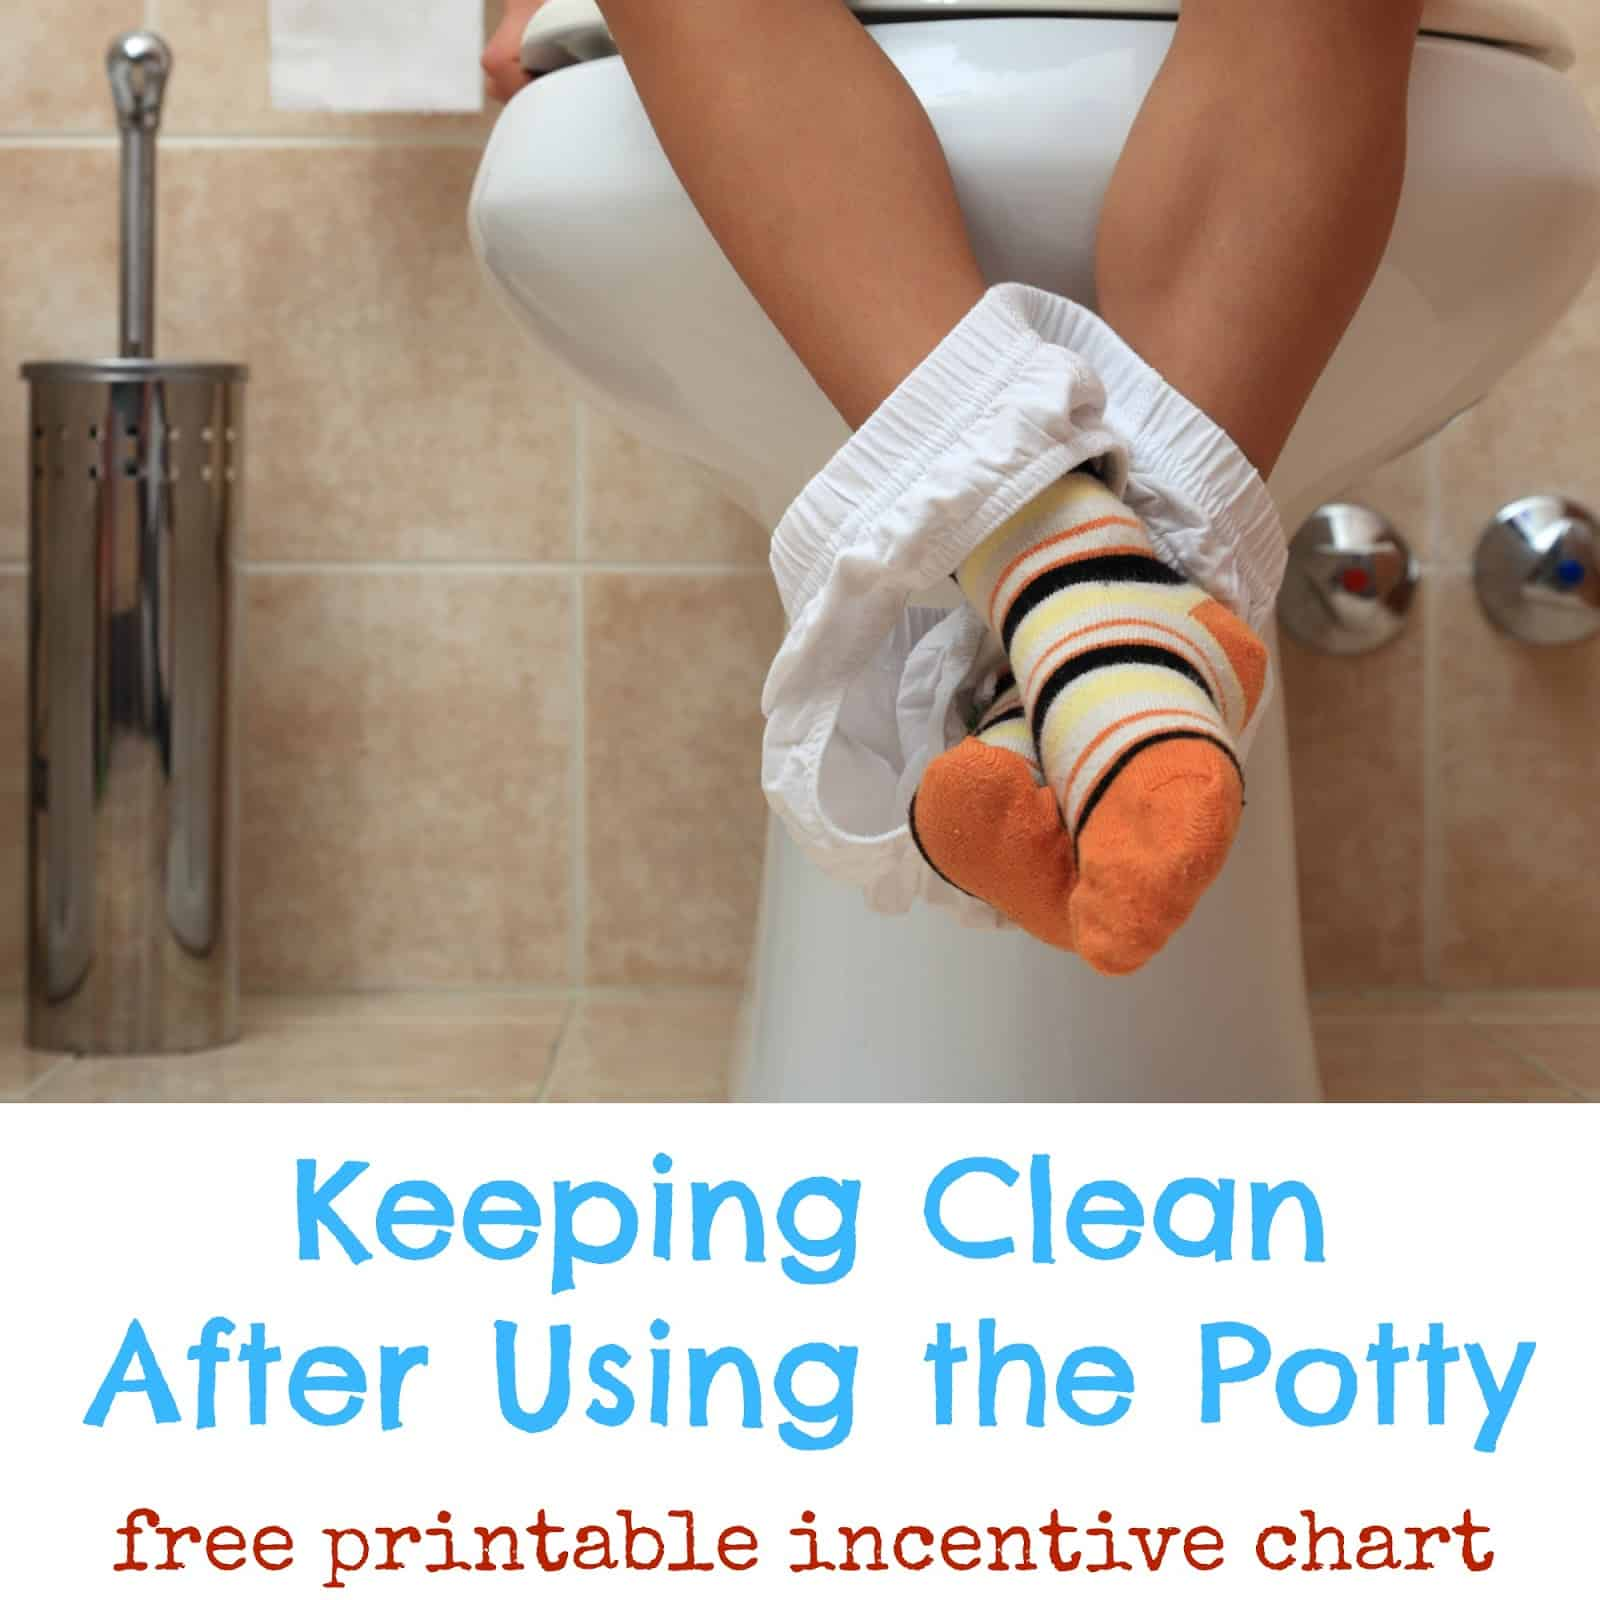 Keeping Clean After Using the Potty - Tips and free printable incentive chart #CtnlCareRoutine #PMedia #sponsored